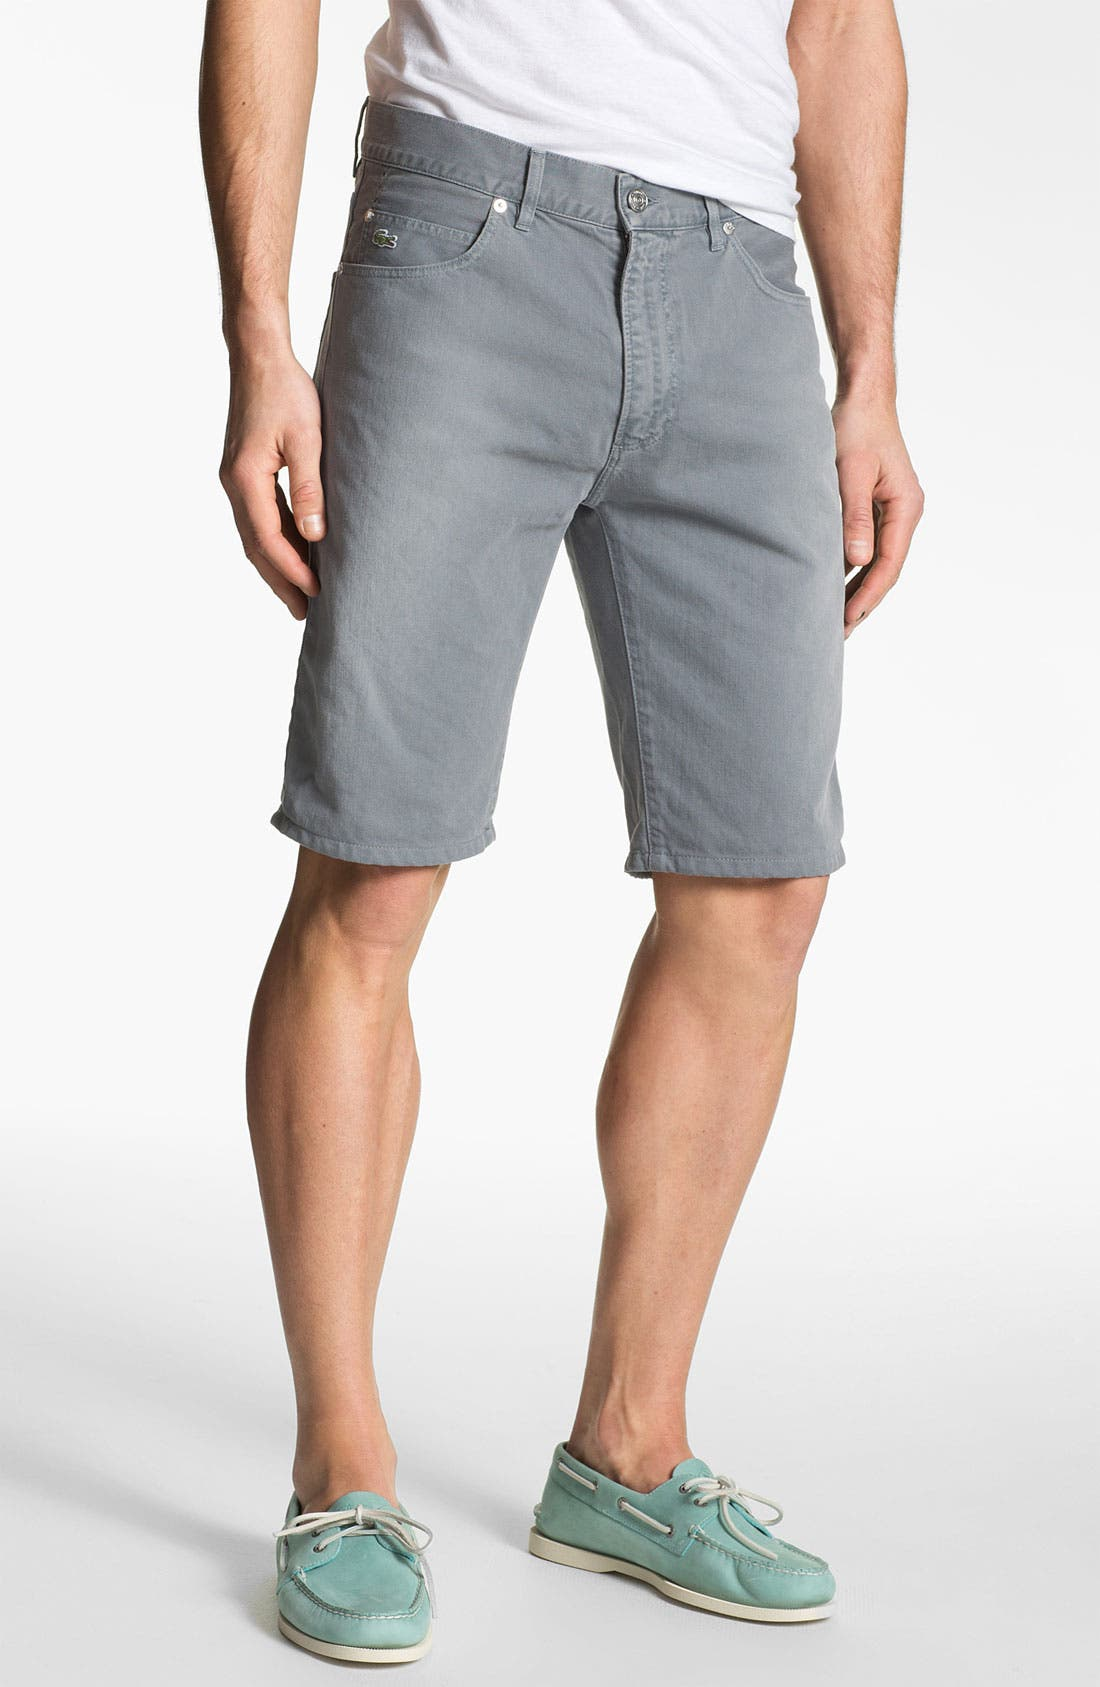 Alternate Image 1 Selected - Lacoste L!VE Twill Bermuda Shorts